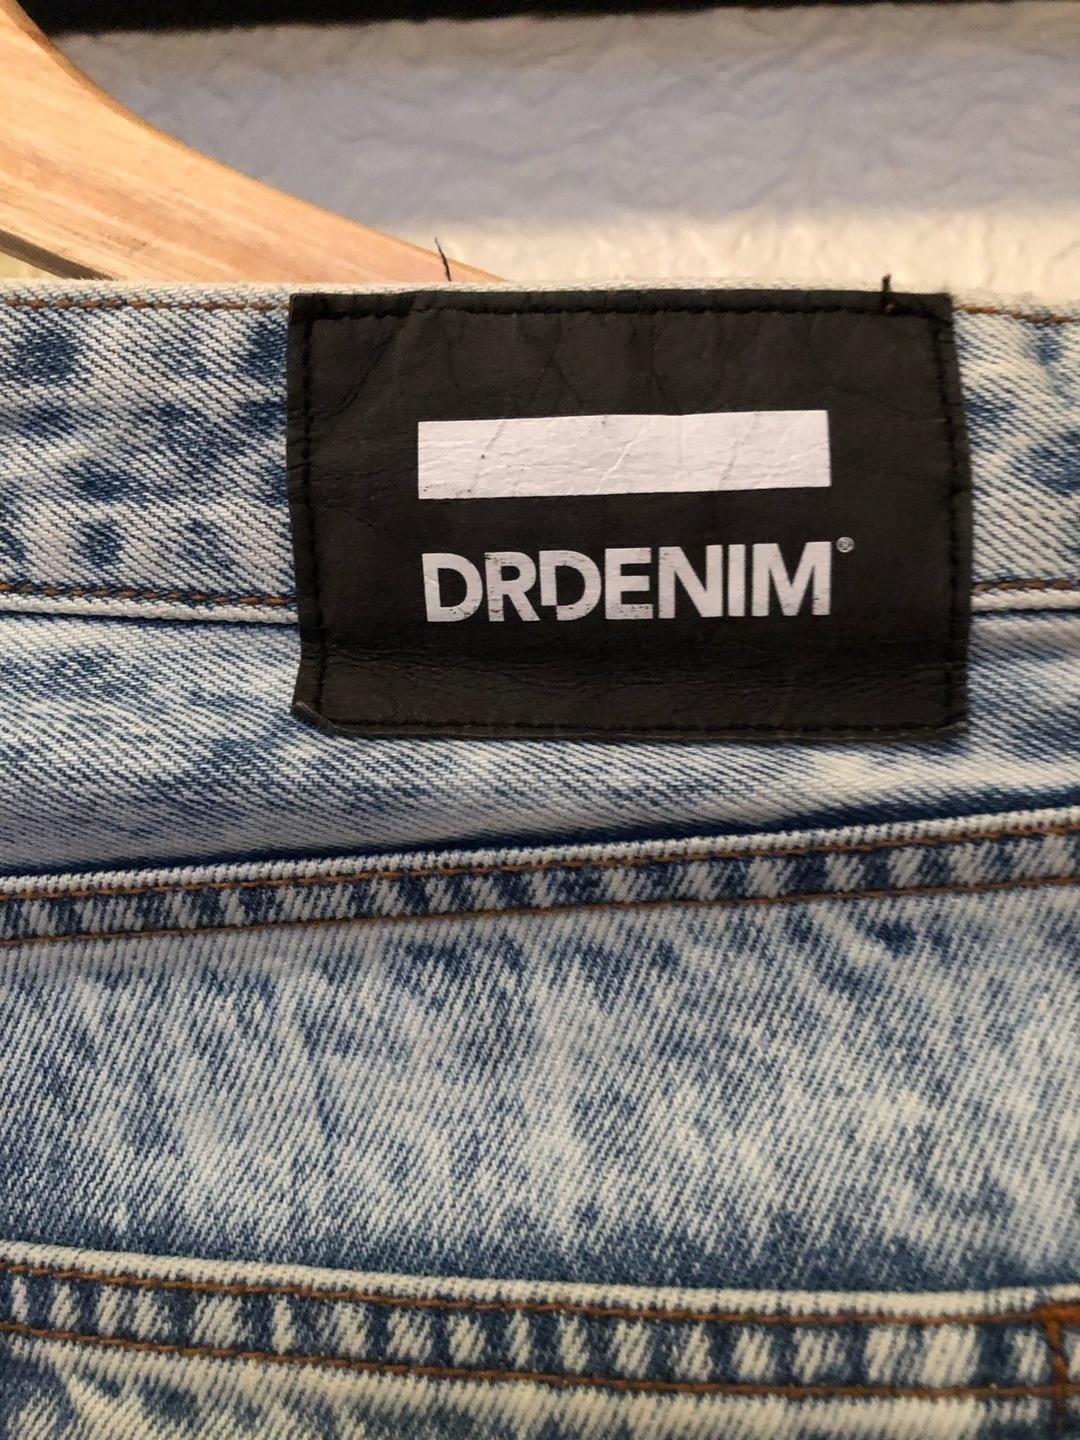 Damen hosen & jeans - DR. DENIM photo 4